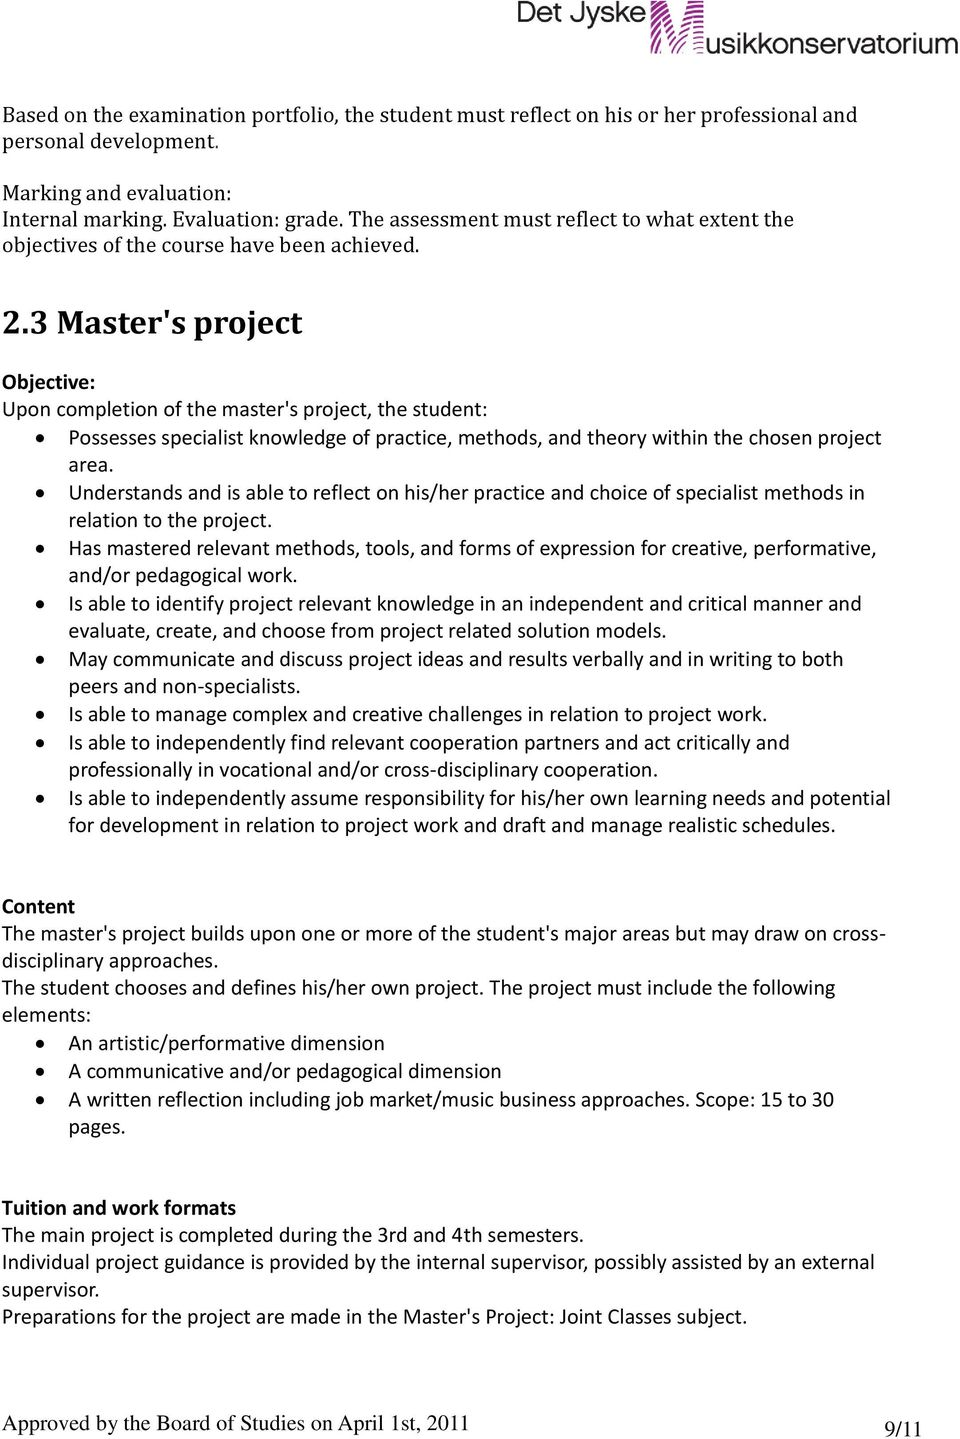 3 Master's project Objective: Upon completion of the master's project, the student: Possesses specialist knowledge of practice, methods, and theory within the chosen project area.